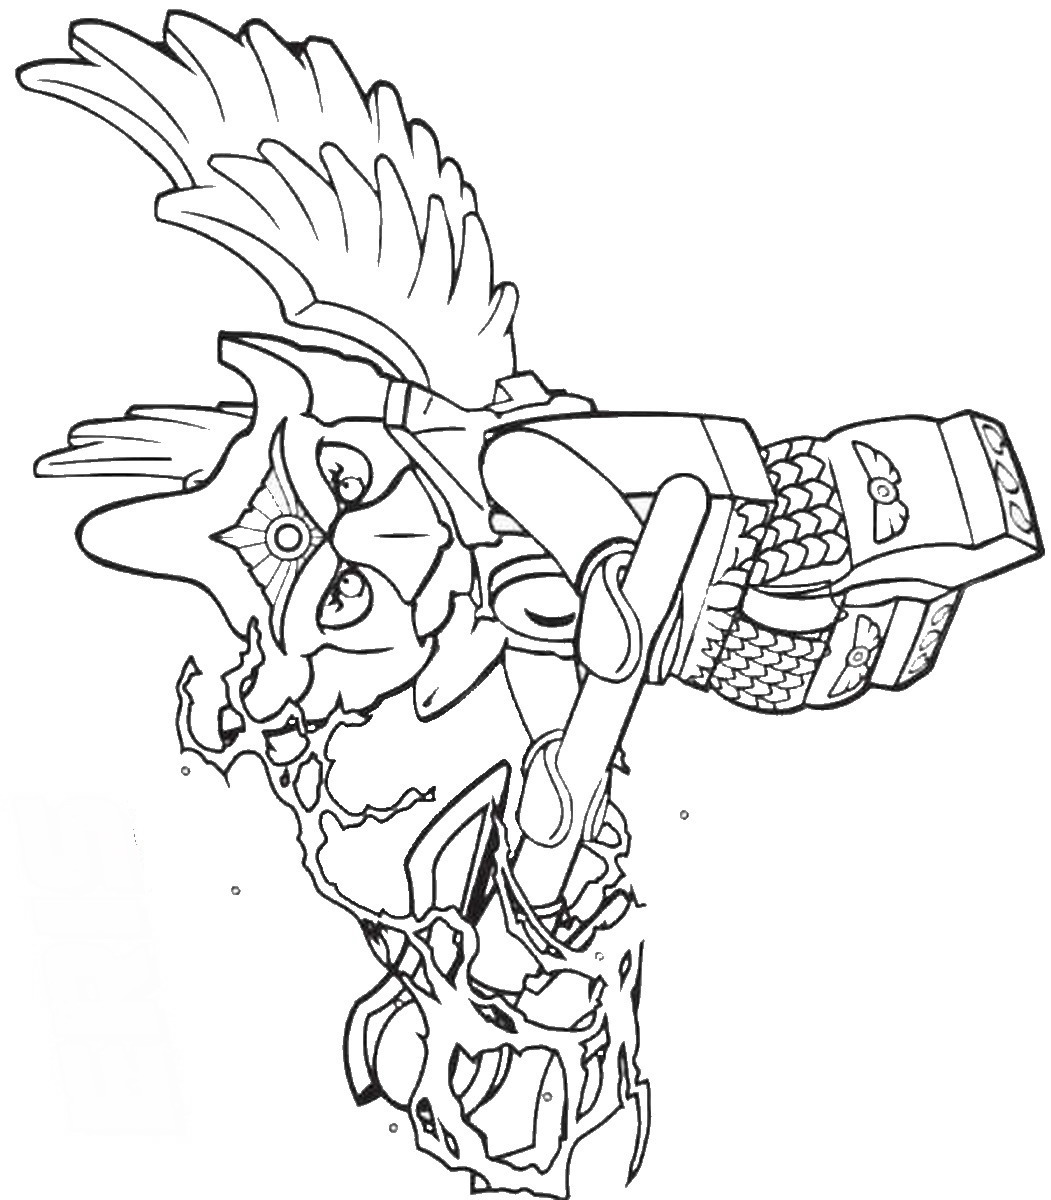 chima coloring page chima coloring pages wolf 2020 check more at https coloring page chima